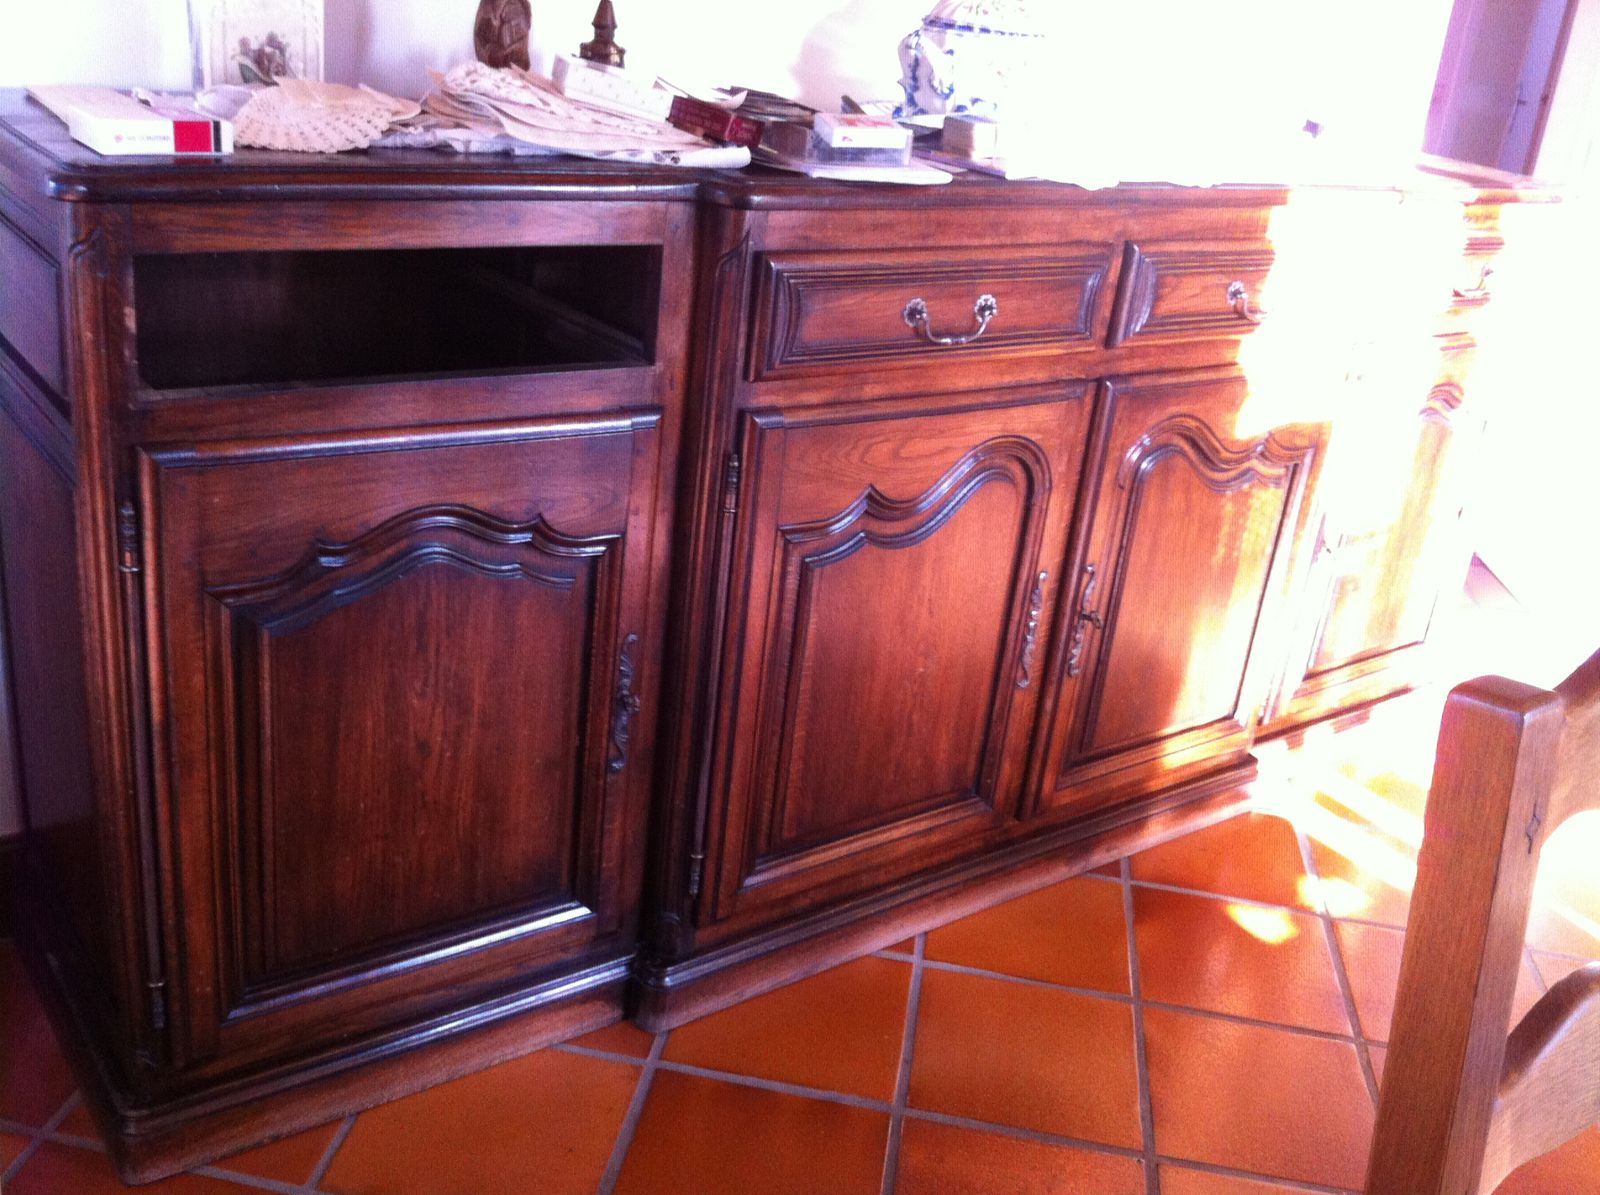 Buffet table secretaire chaises patin s ambiance for Ambiance et patine valence